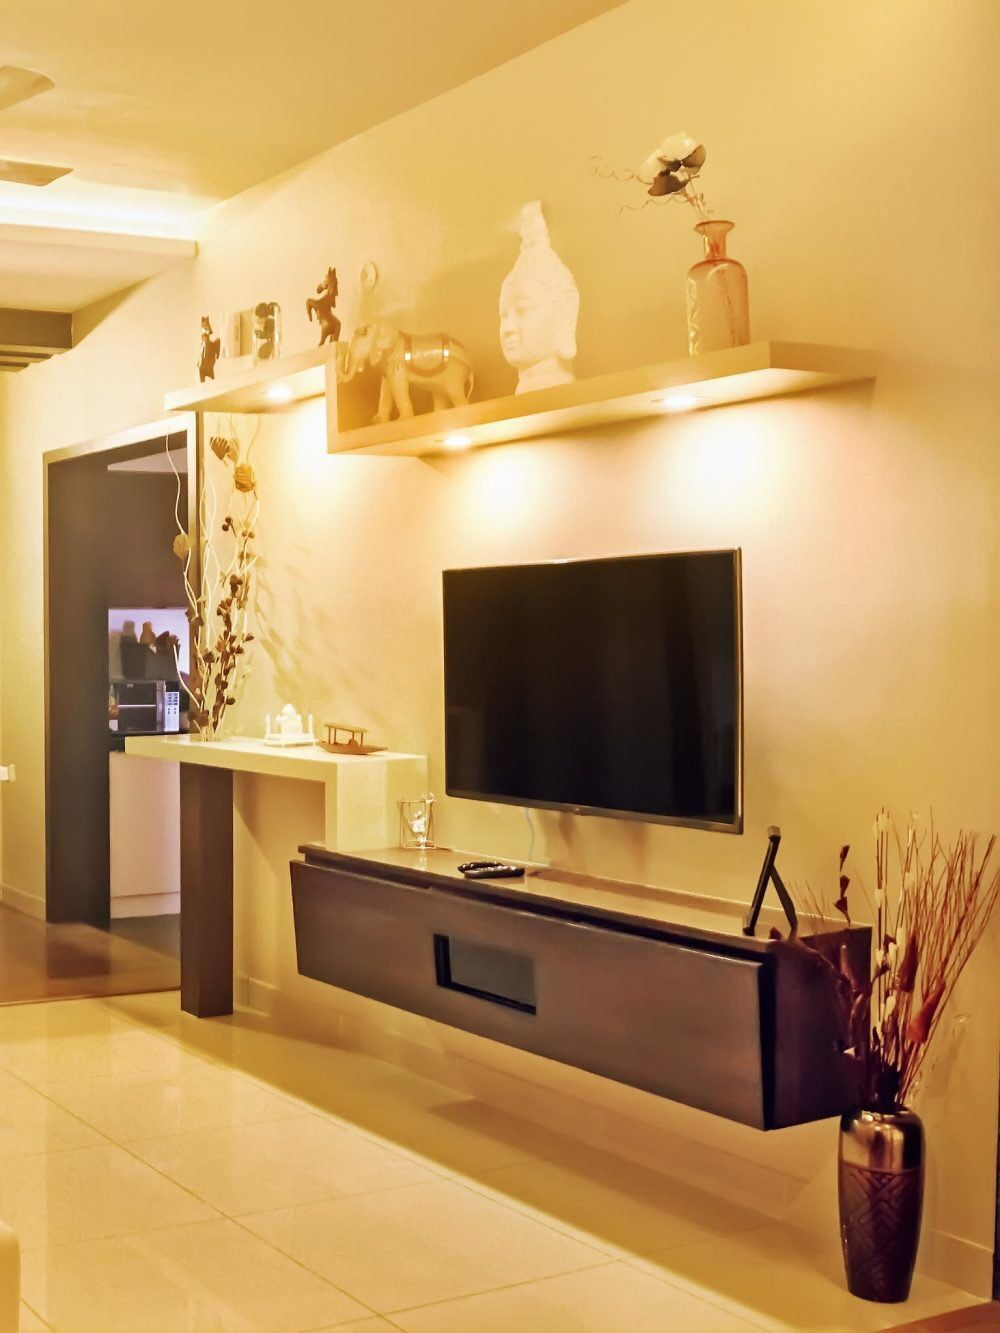 Pin by Sudipta Das on Etternia Sudipta | Pinterest | Tv units, TVs ...